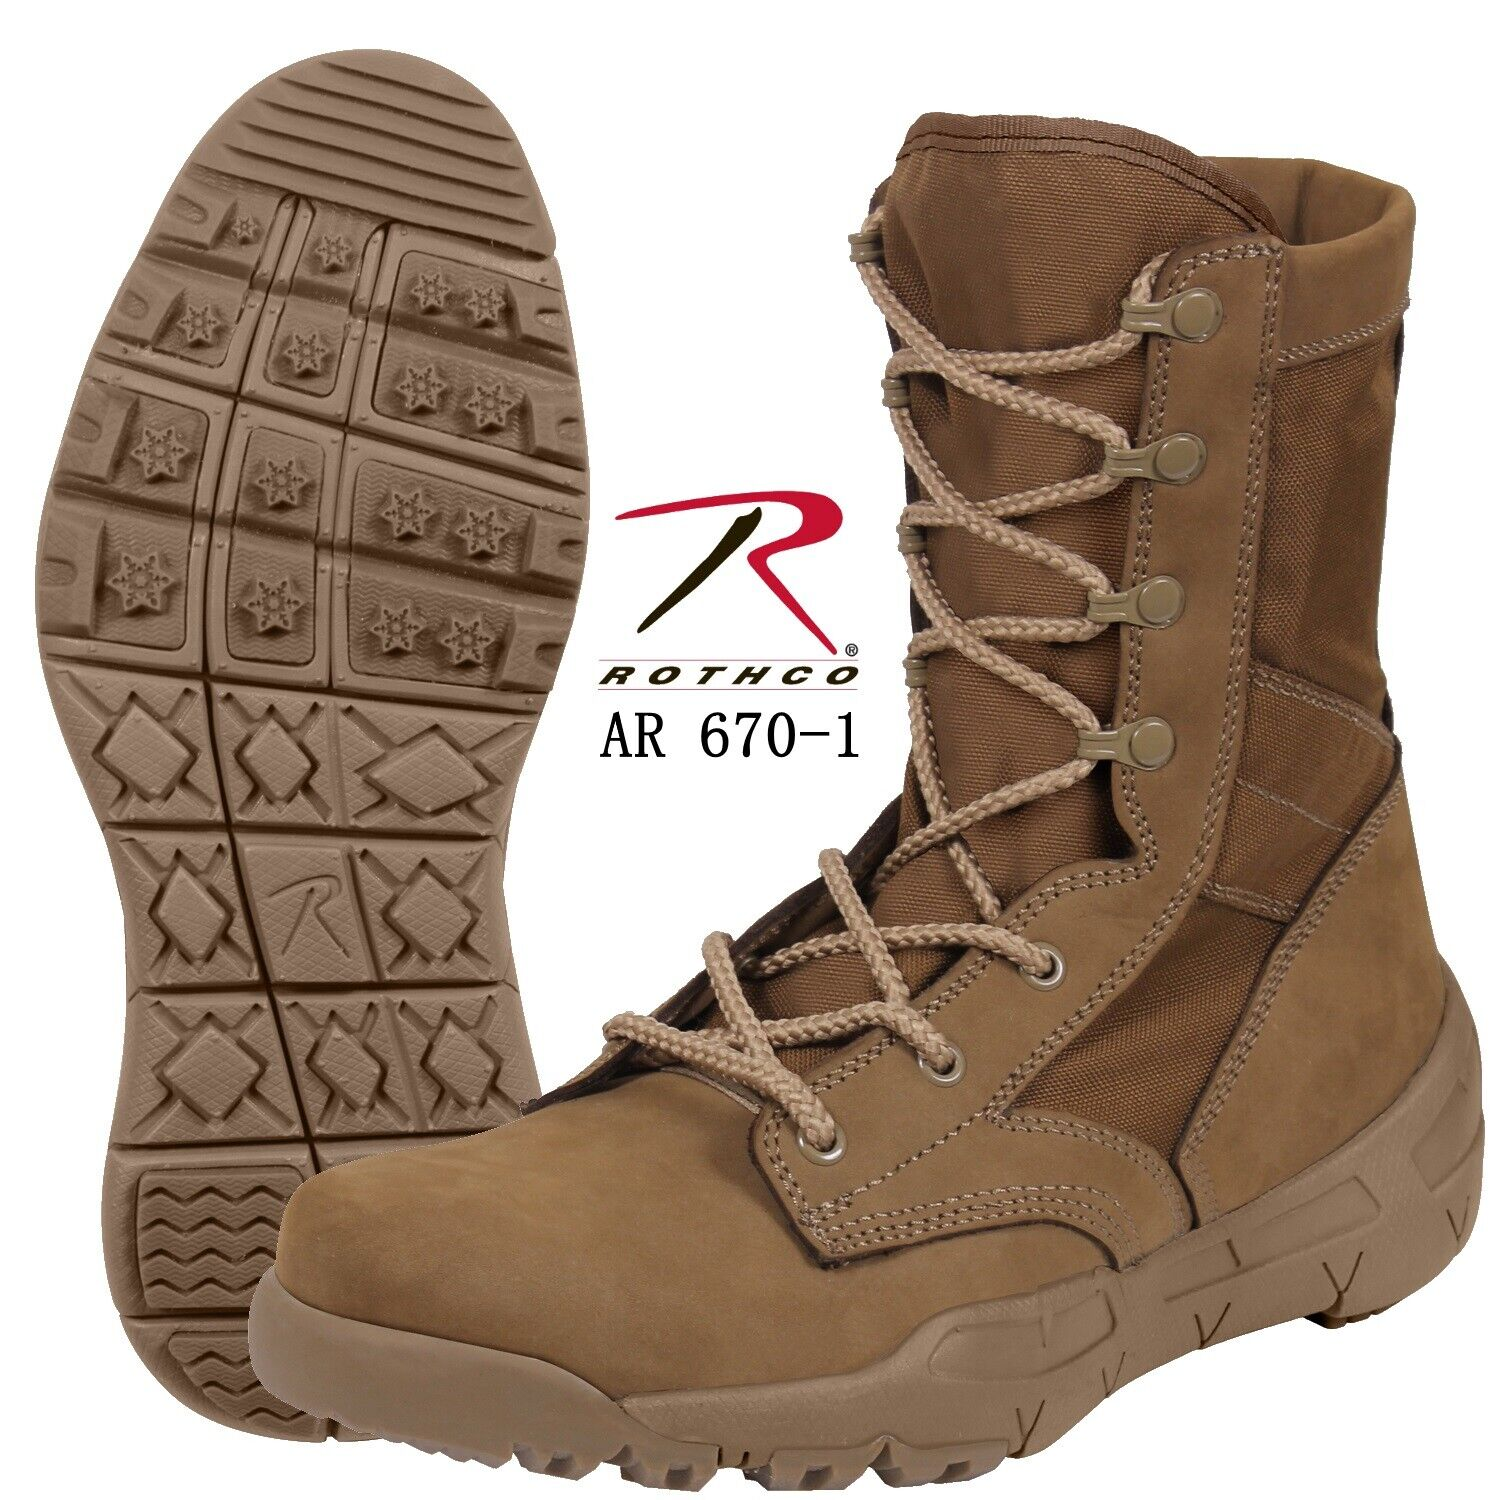 redHCO V-MAX LIGHTWEIGHT TACTICAL BOOT AR 670-1 COYOTE